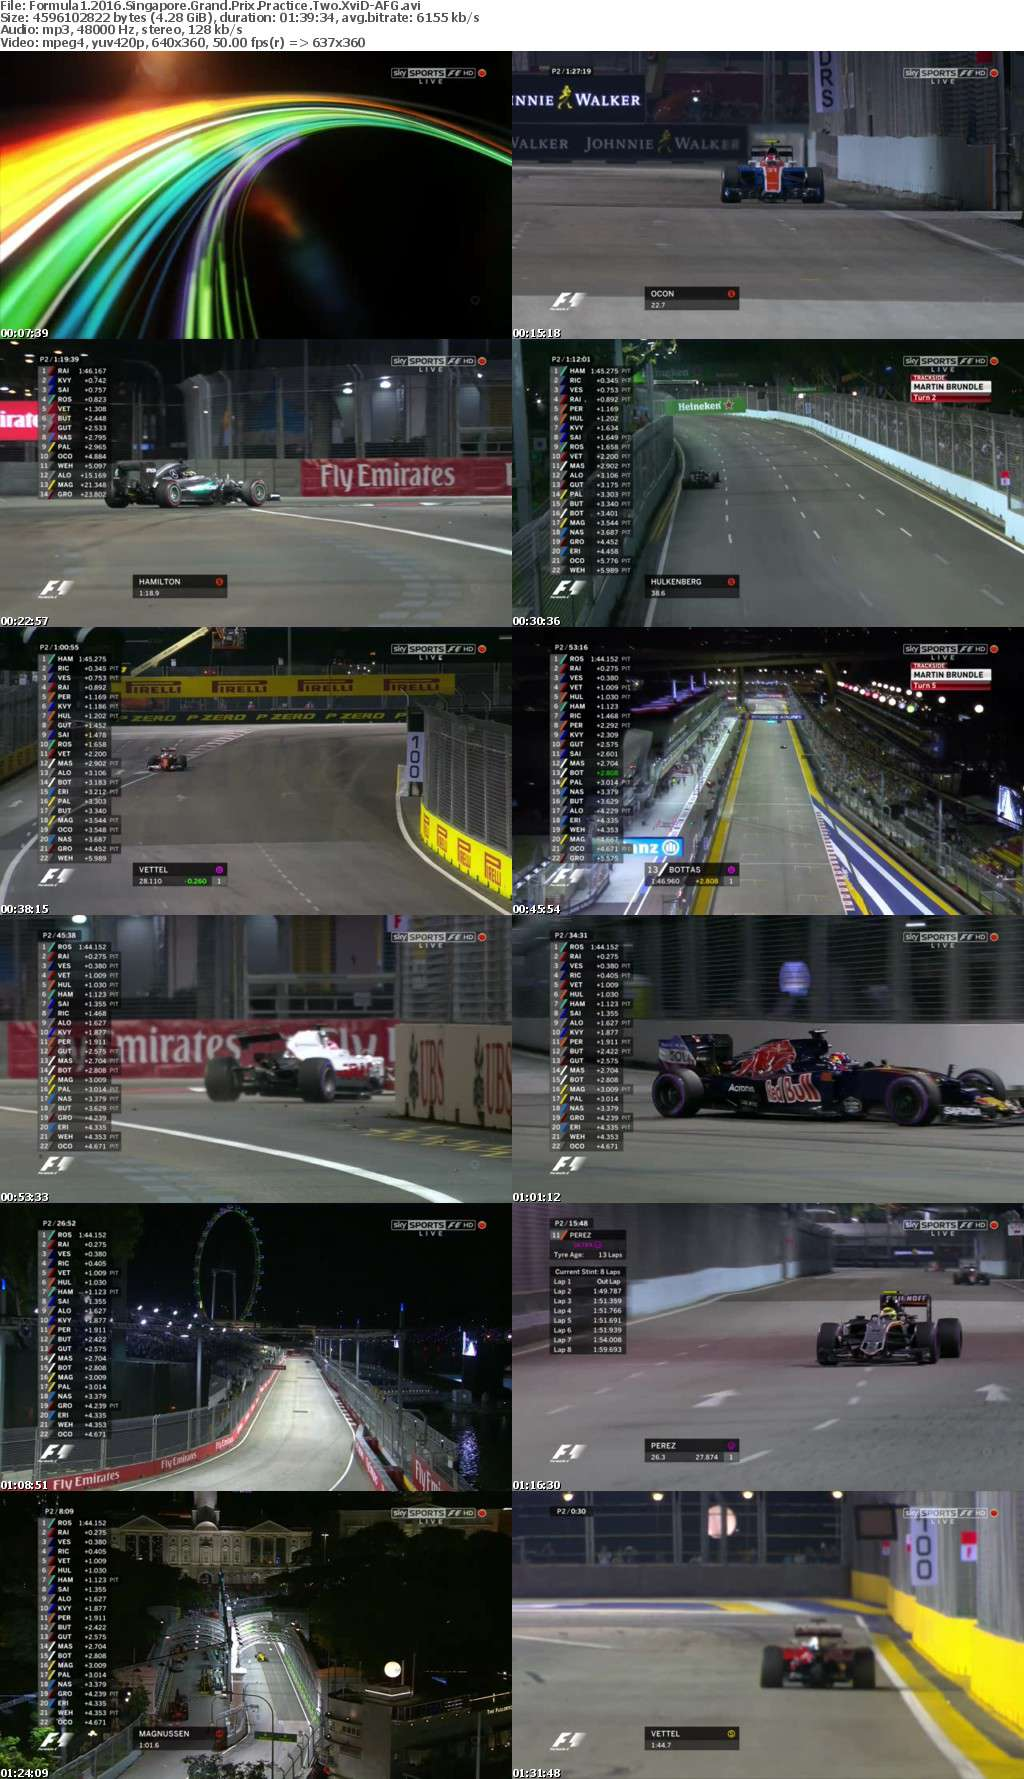 Formula1 2016 Singapore Grand Prix Practice Two XviD-AFG